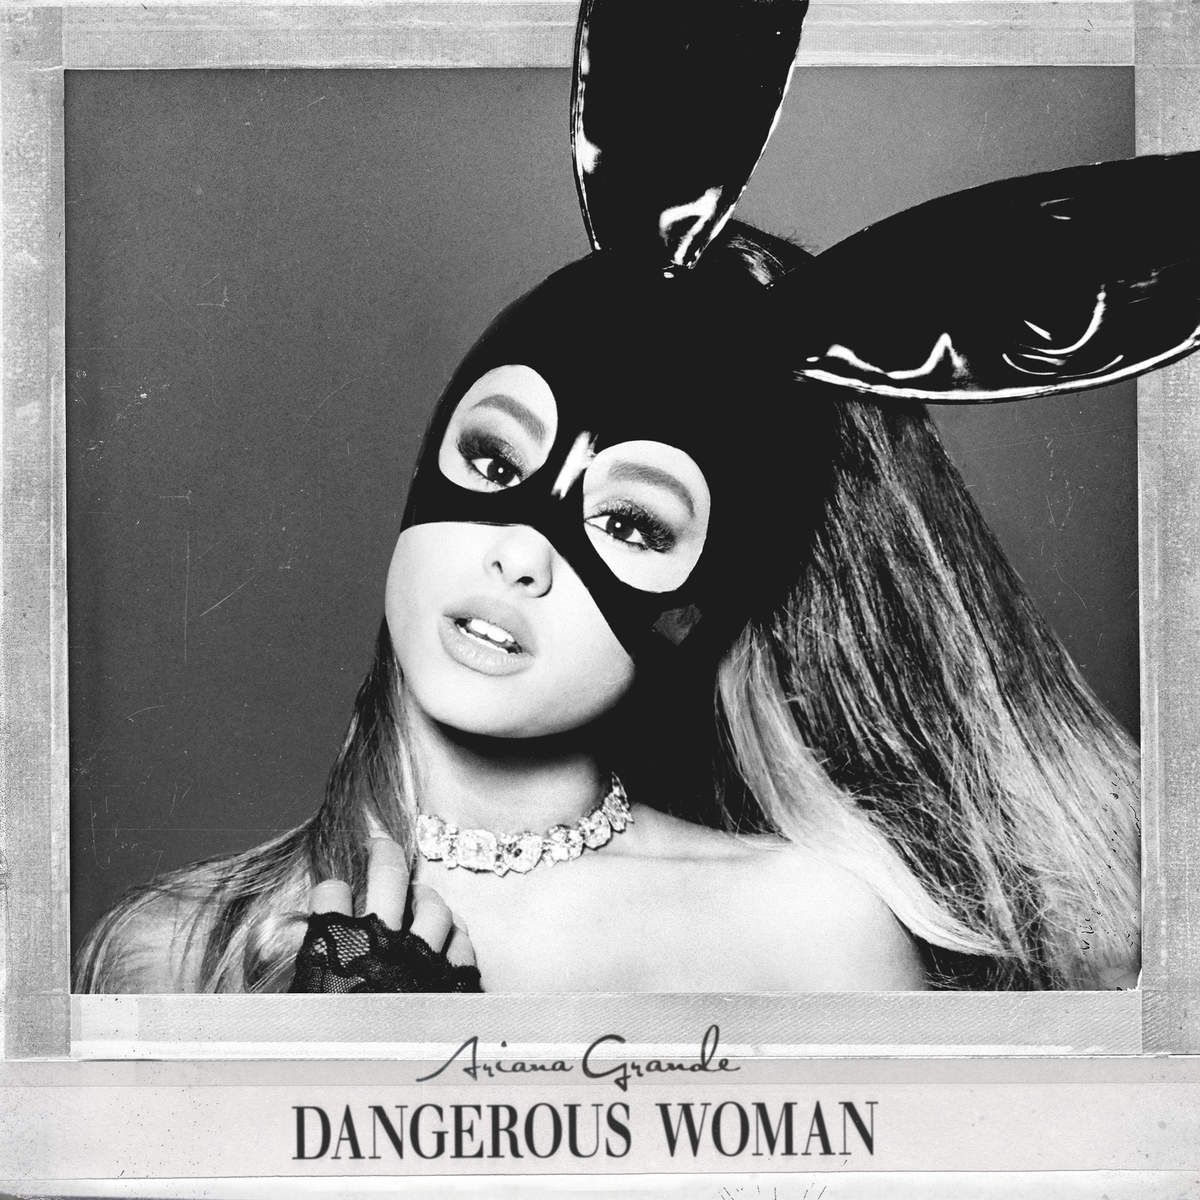 Ariana Grande - Dangerous Woman album cover